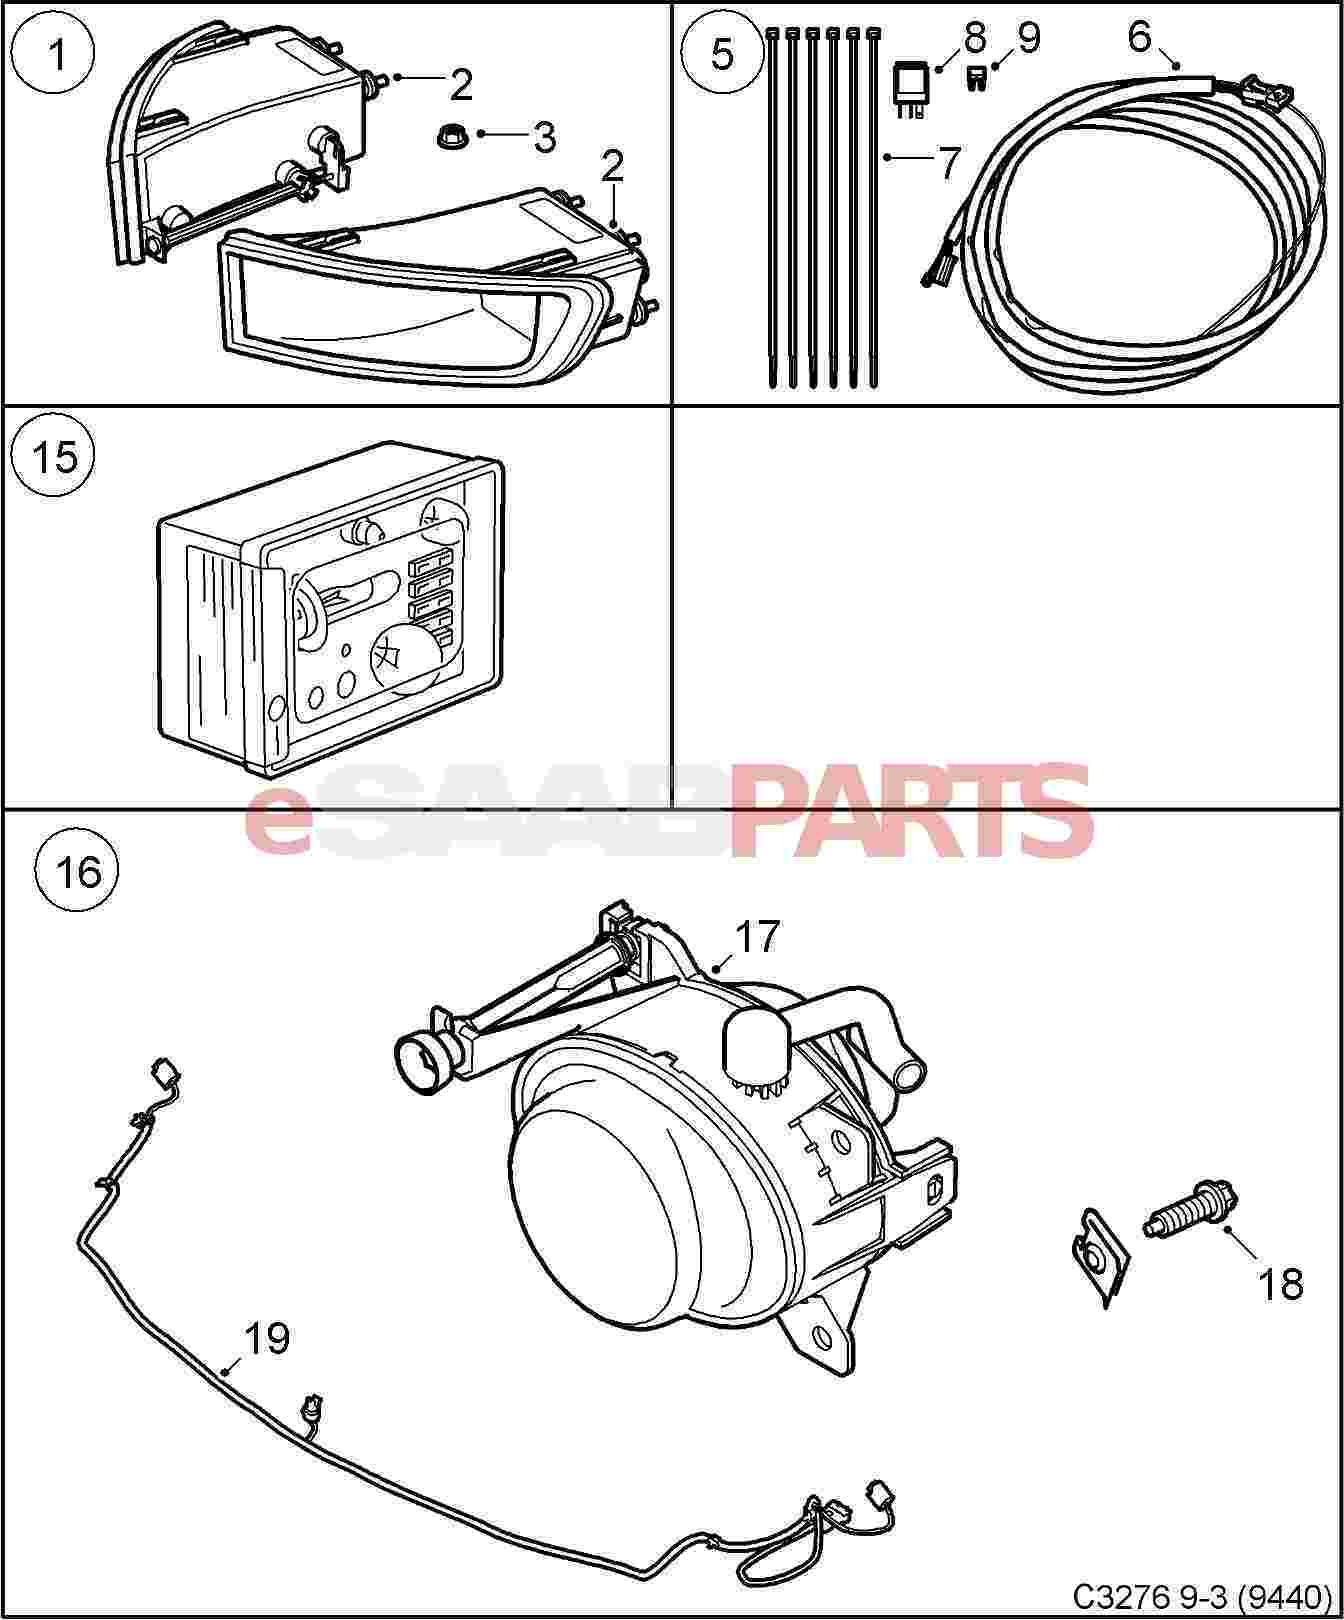 eSaabParts.com - Saab 9-3 (9440) > Accessories & Fluids Parts ...